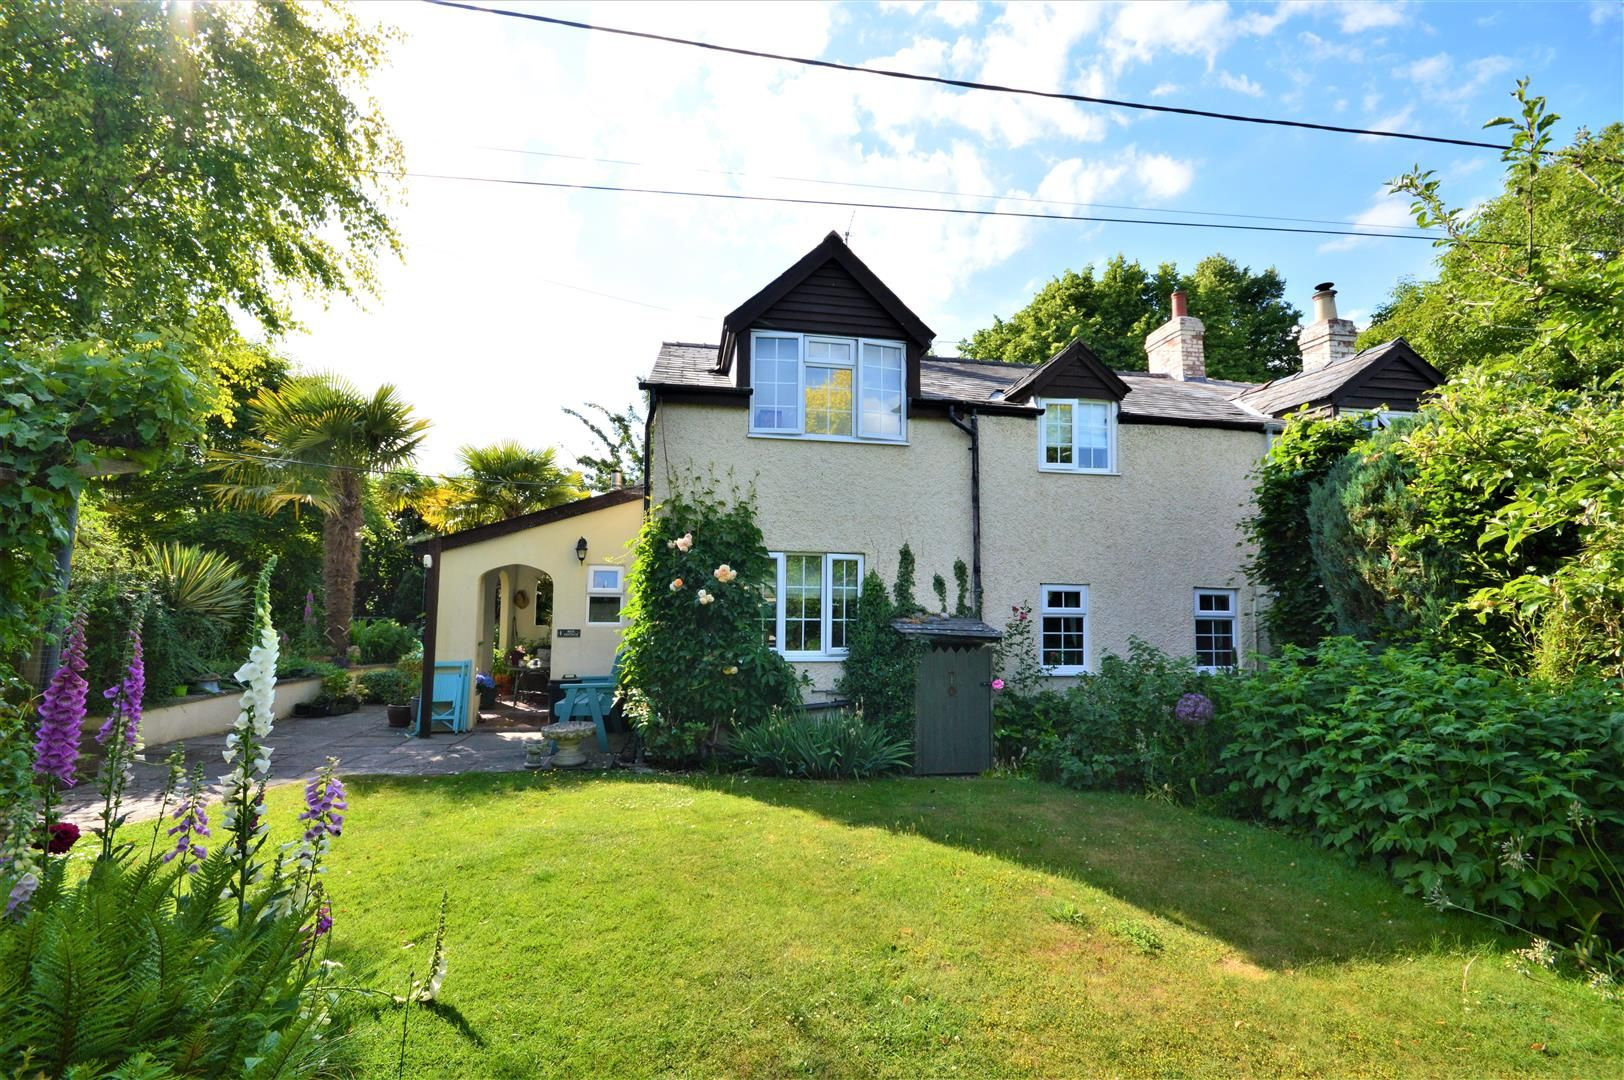 3 bed semi-detached for sale in Stretton Sugwas, HR4